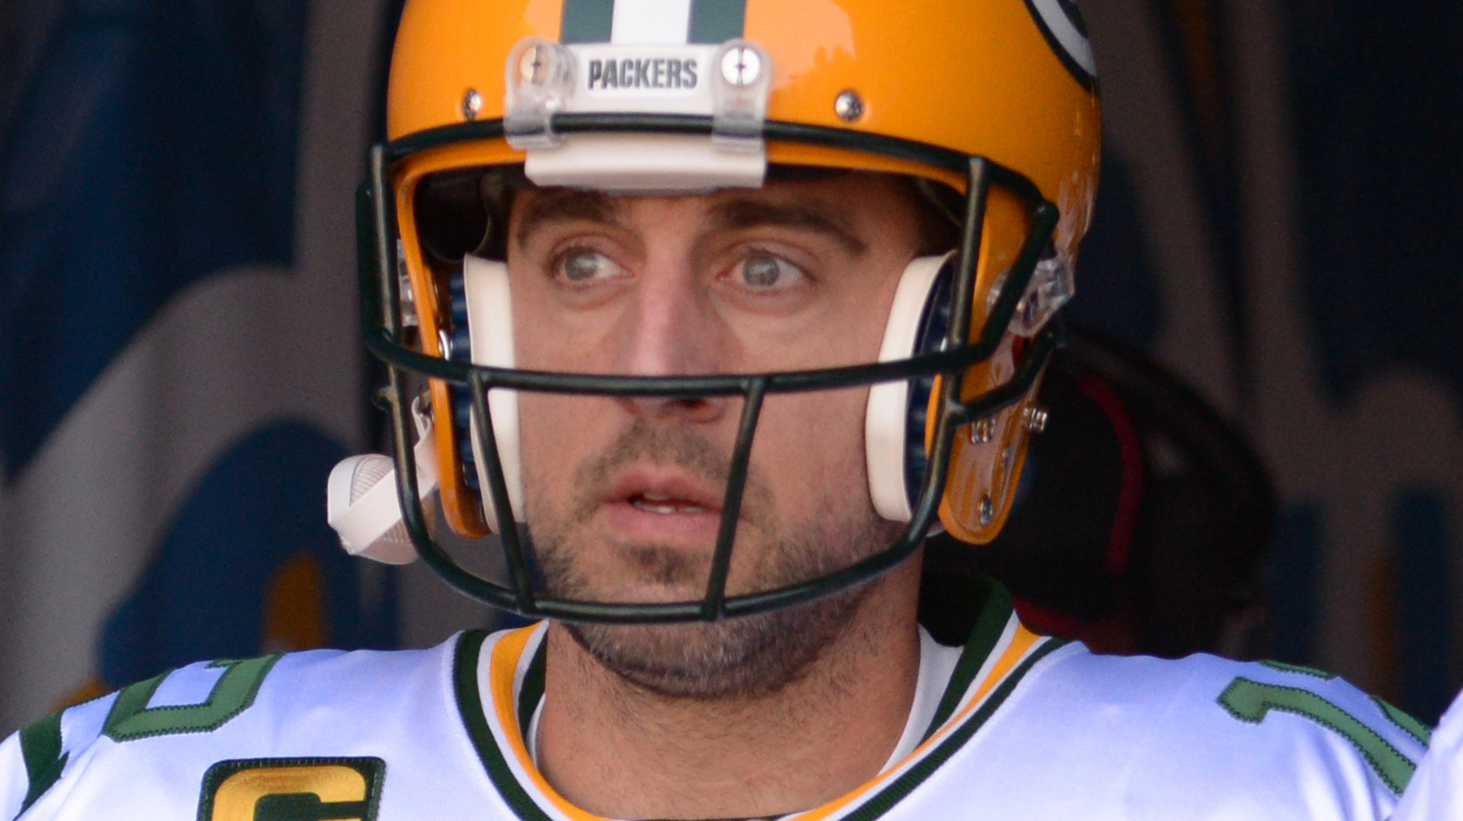 I Would Just Like To Make Sure Everyone Saw These Aaron Rodgers Stats